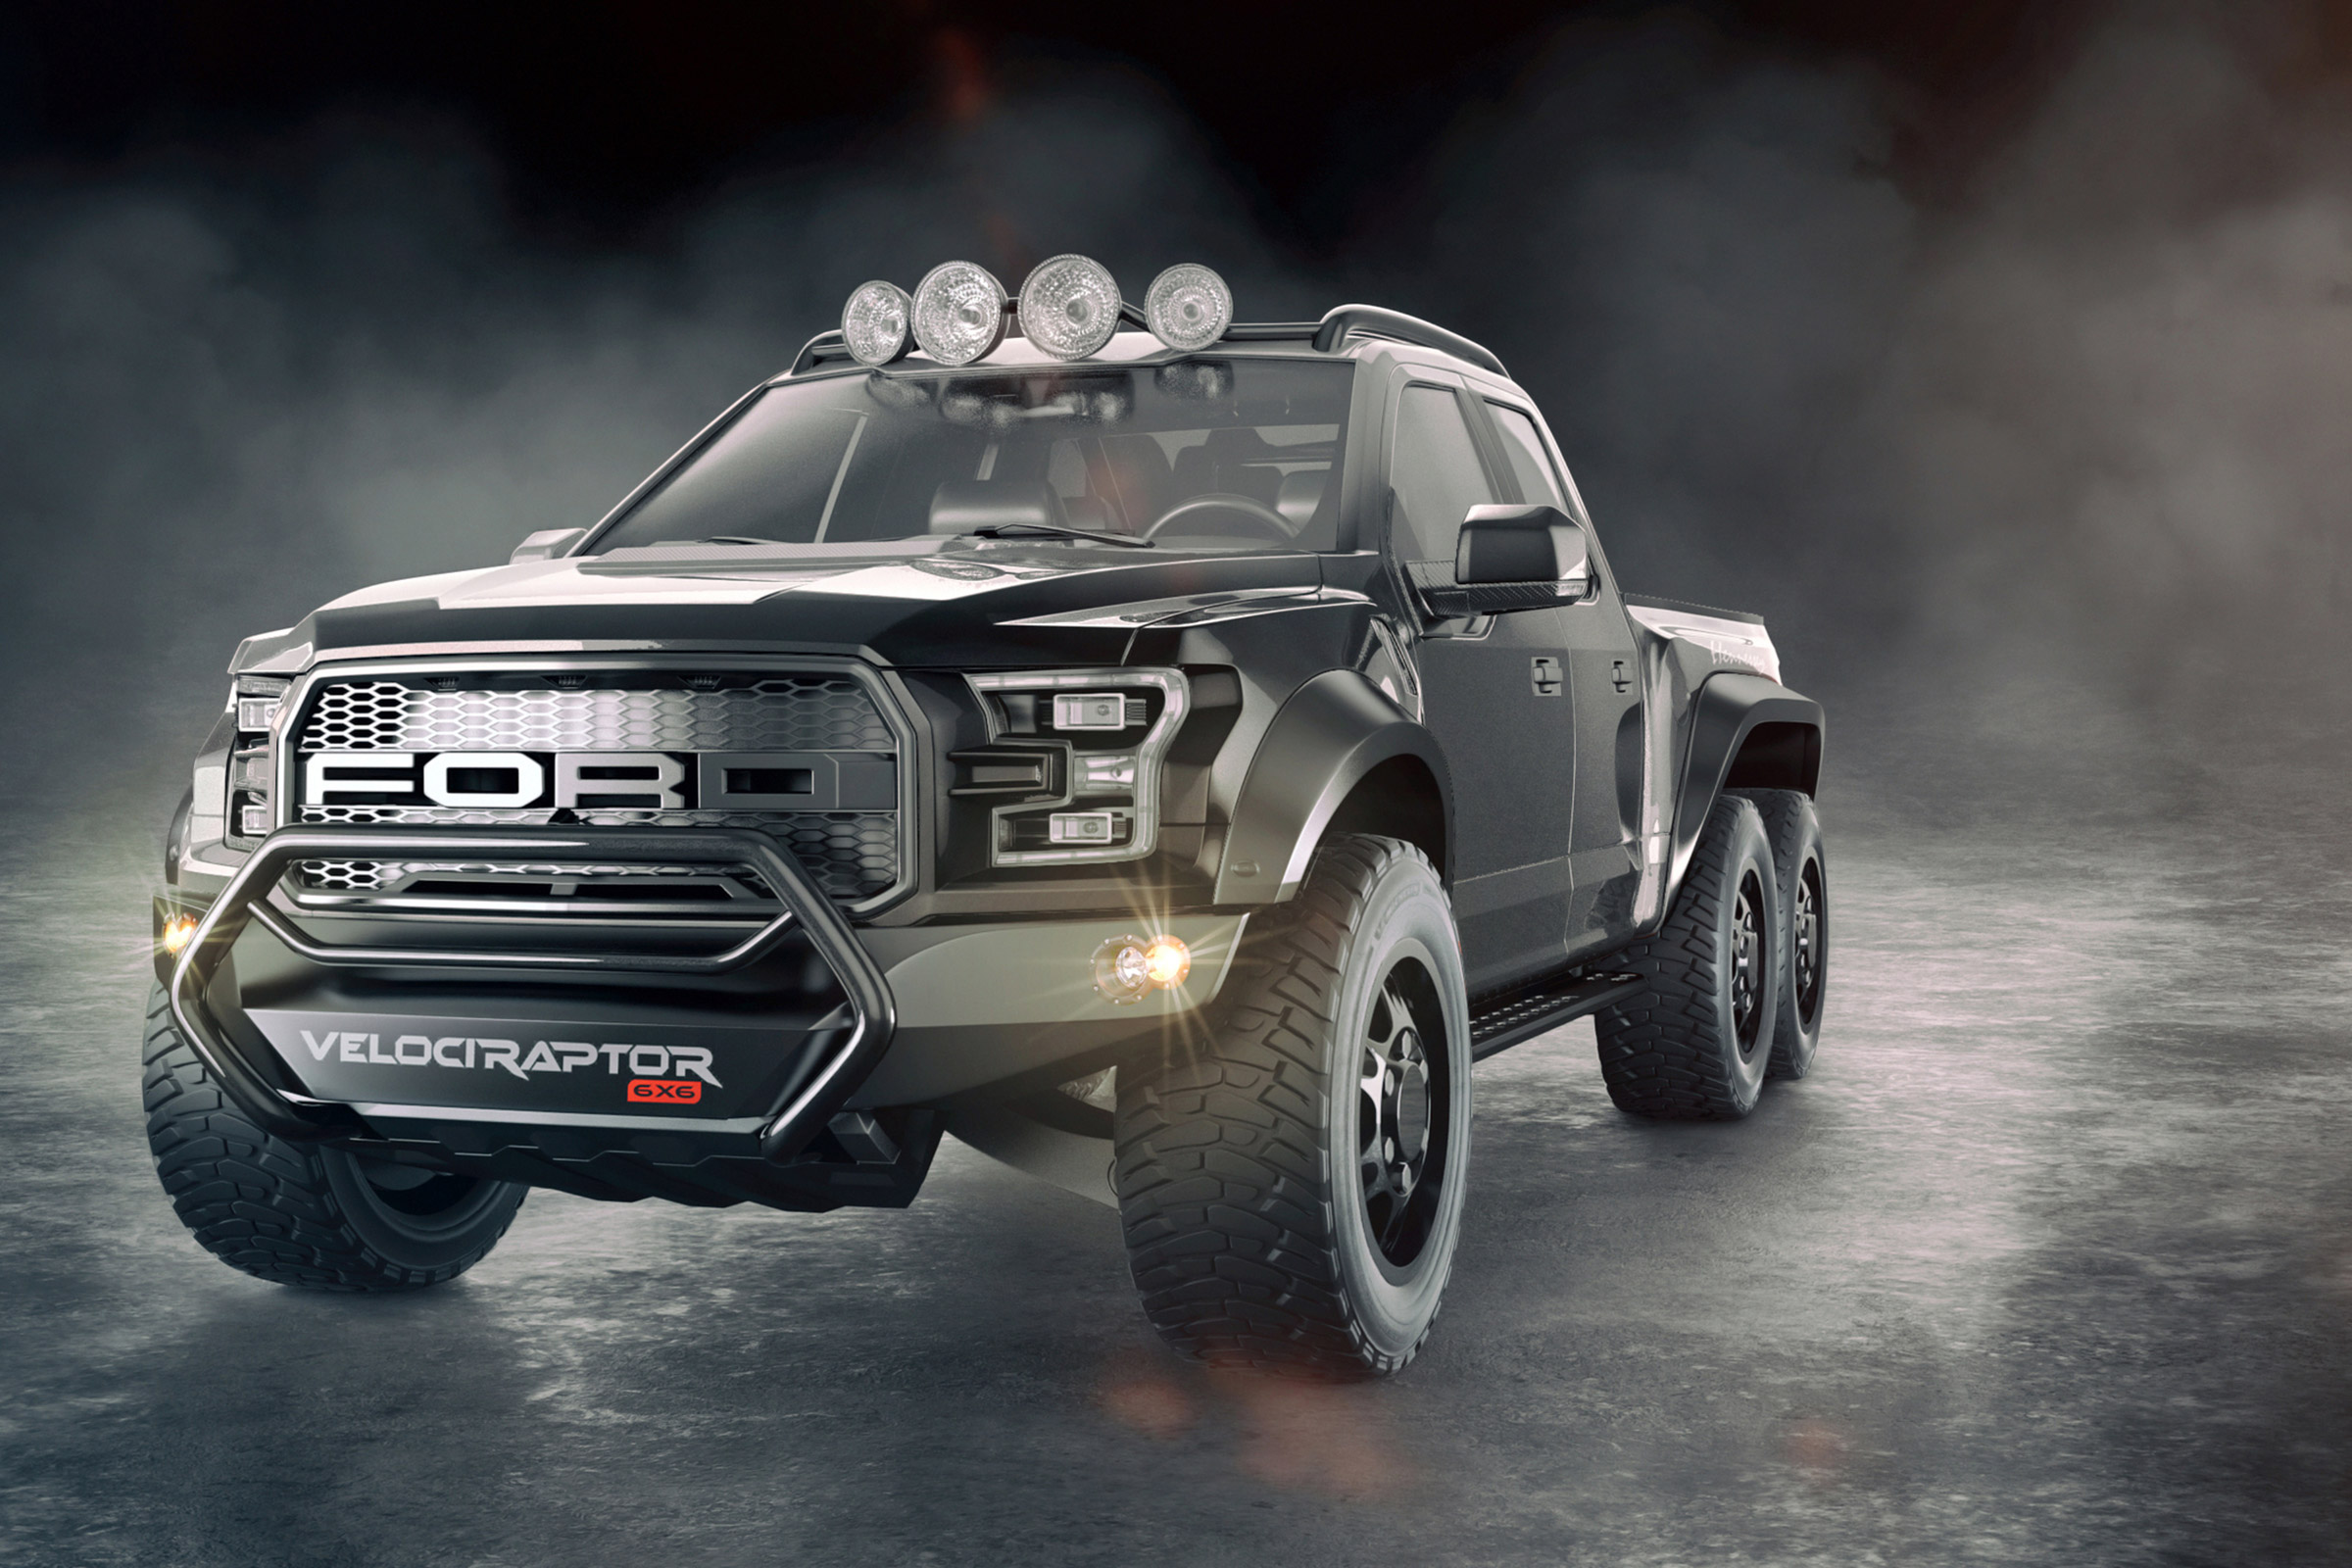 Henessey Velociraptor Is A Mad Mutant Ford Raptor Pick Up Auto Express